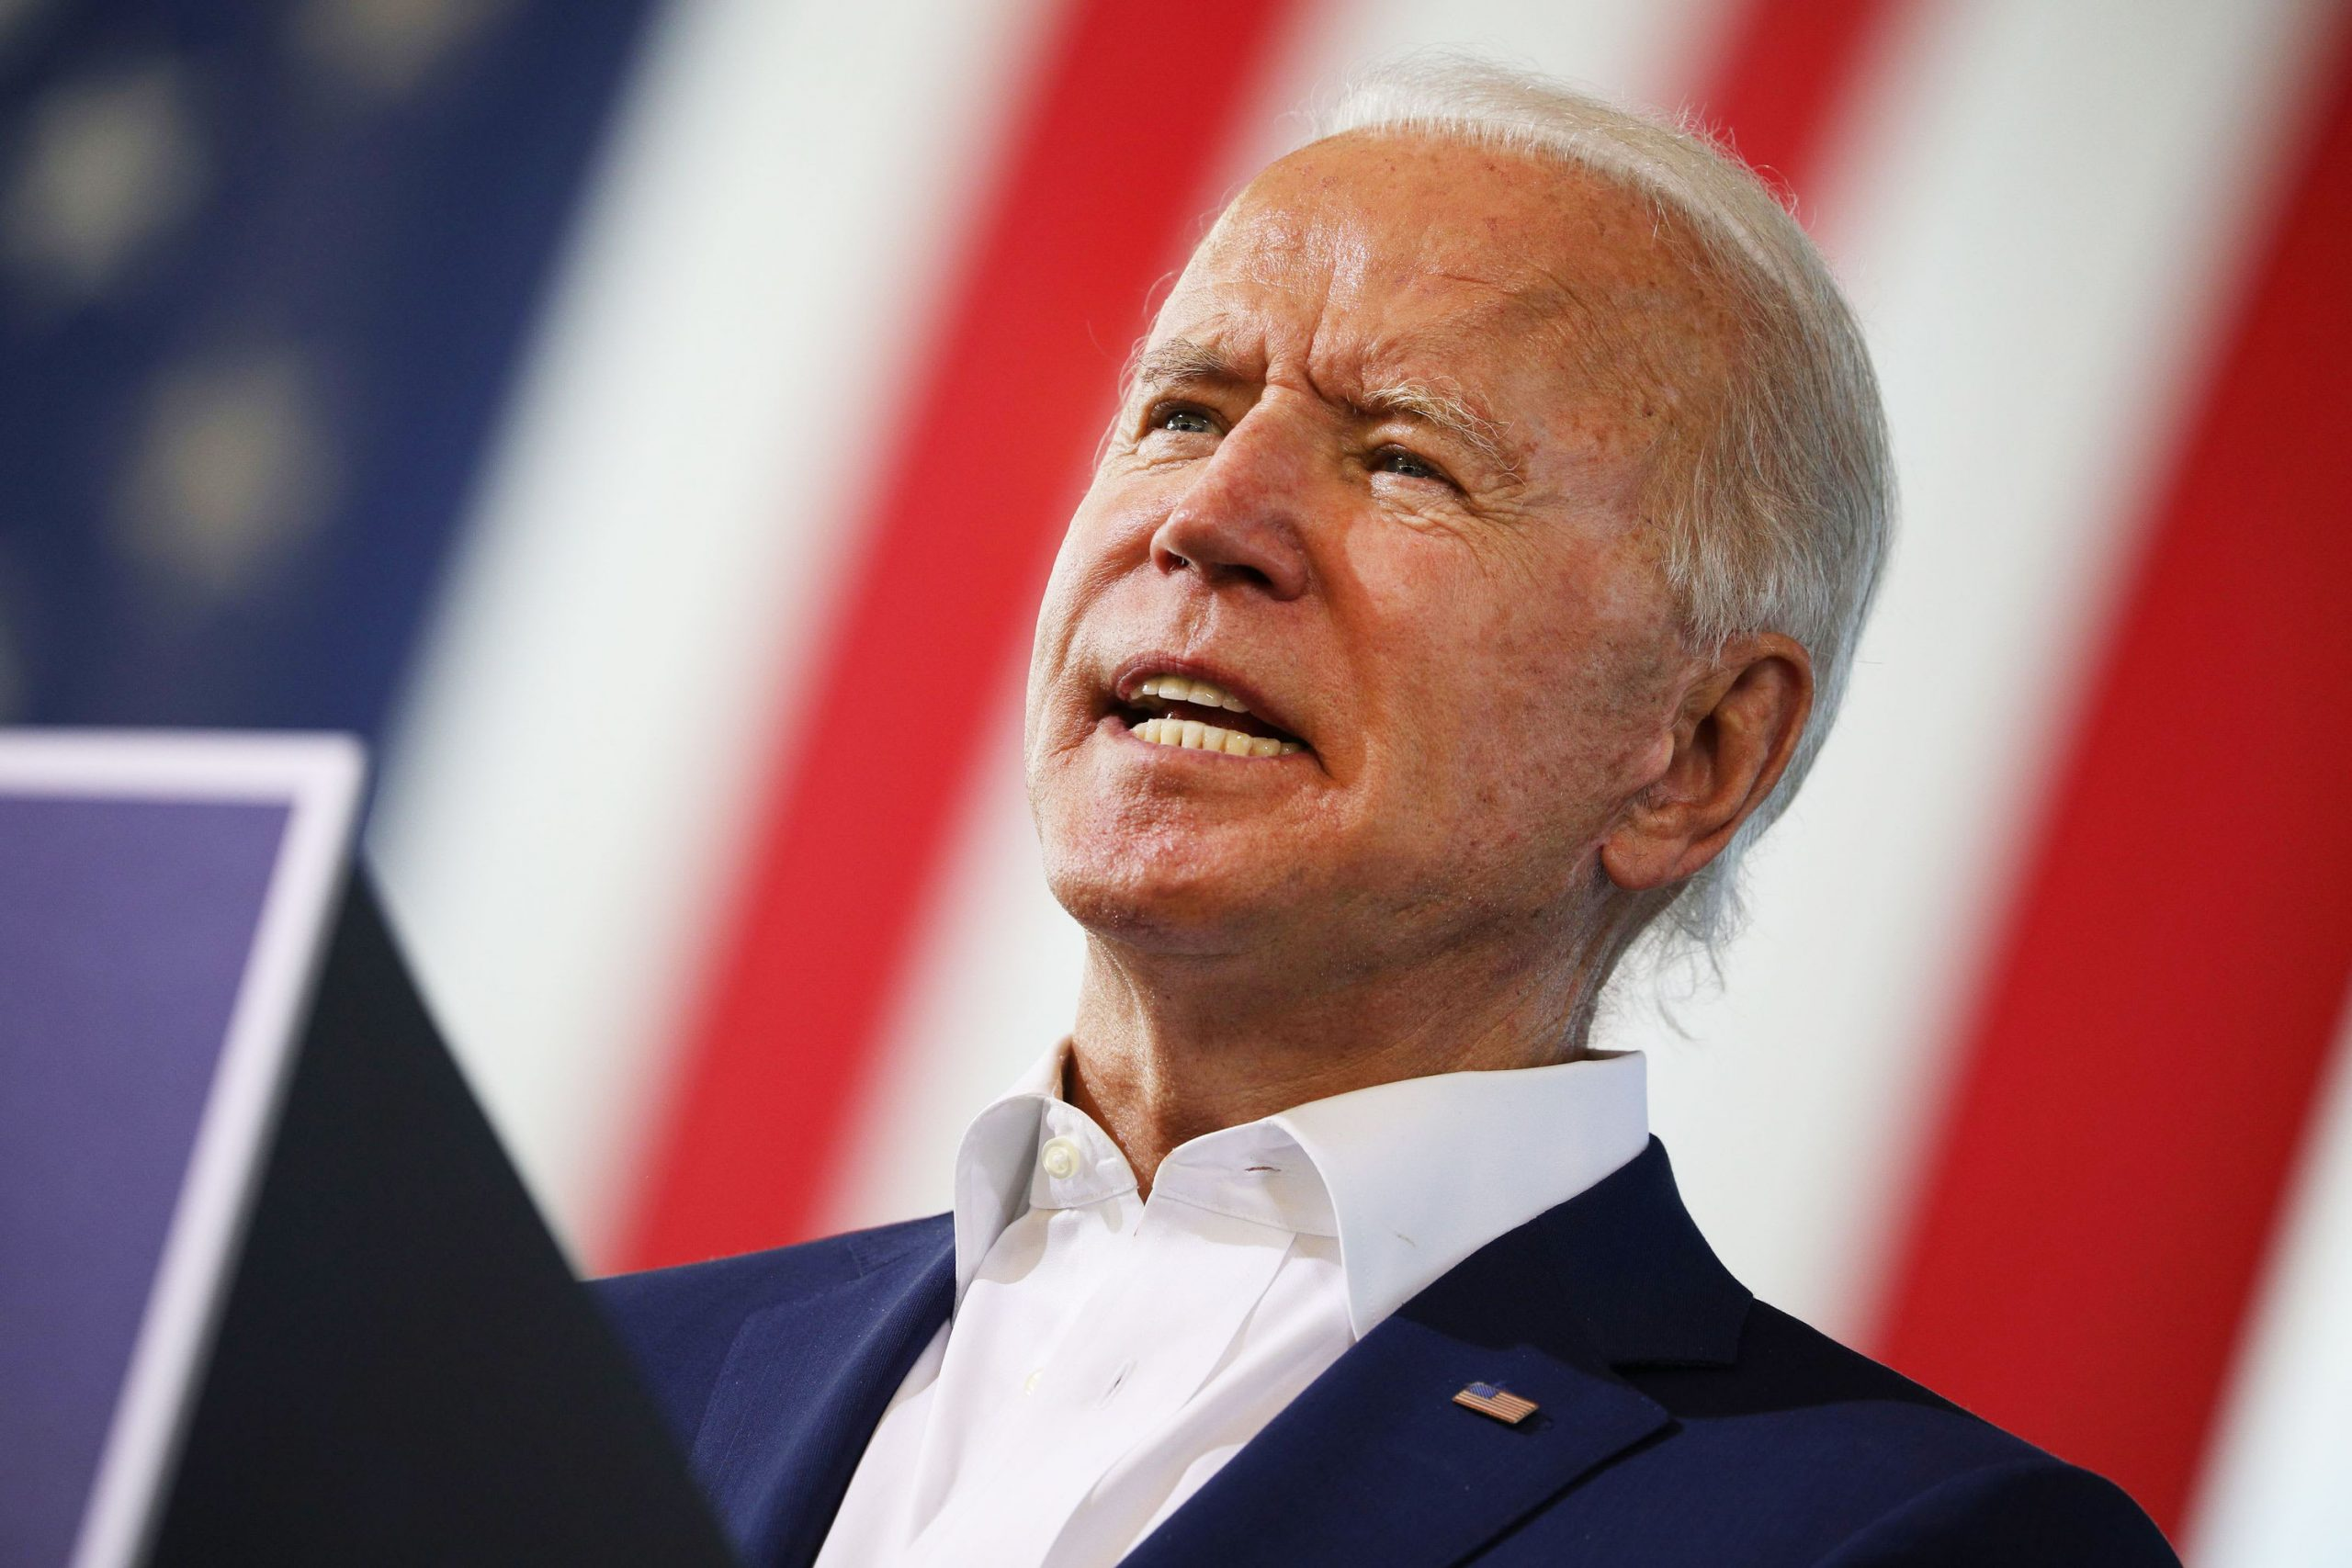 Why freelancers worry a Biden presidency might put them out of labor